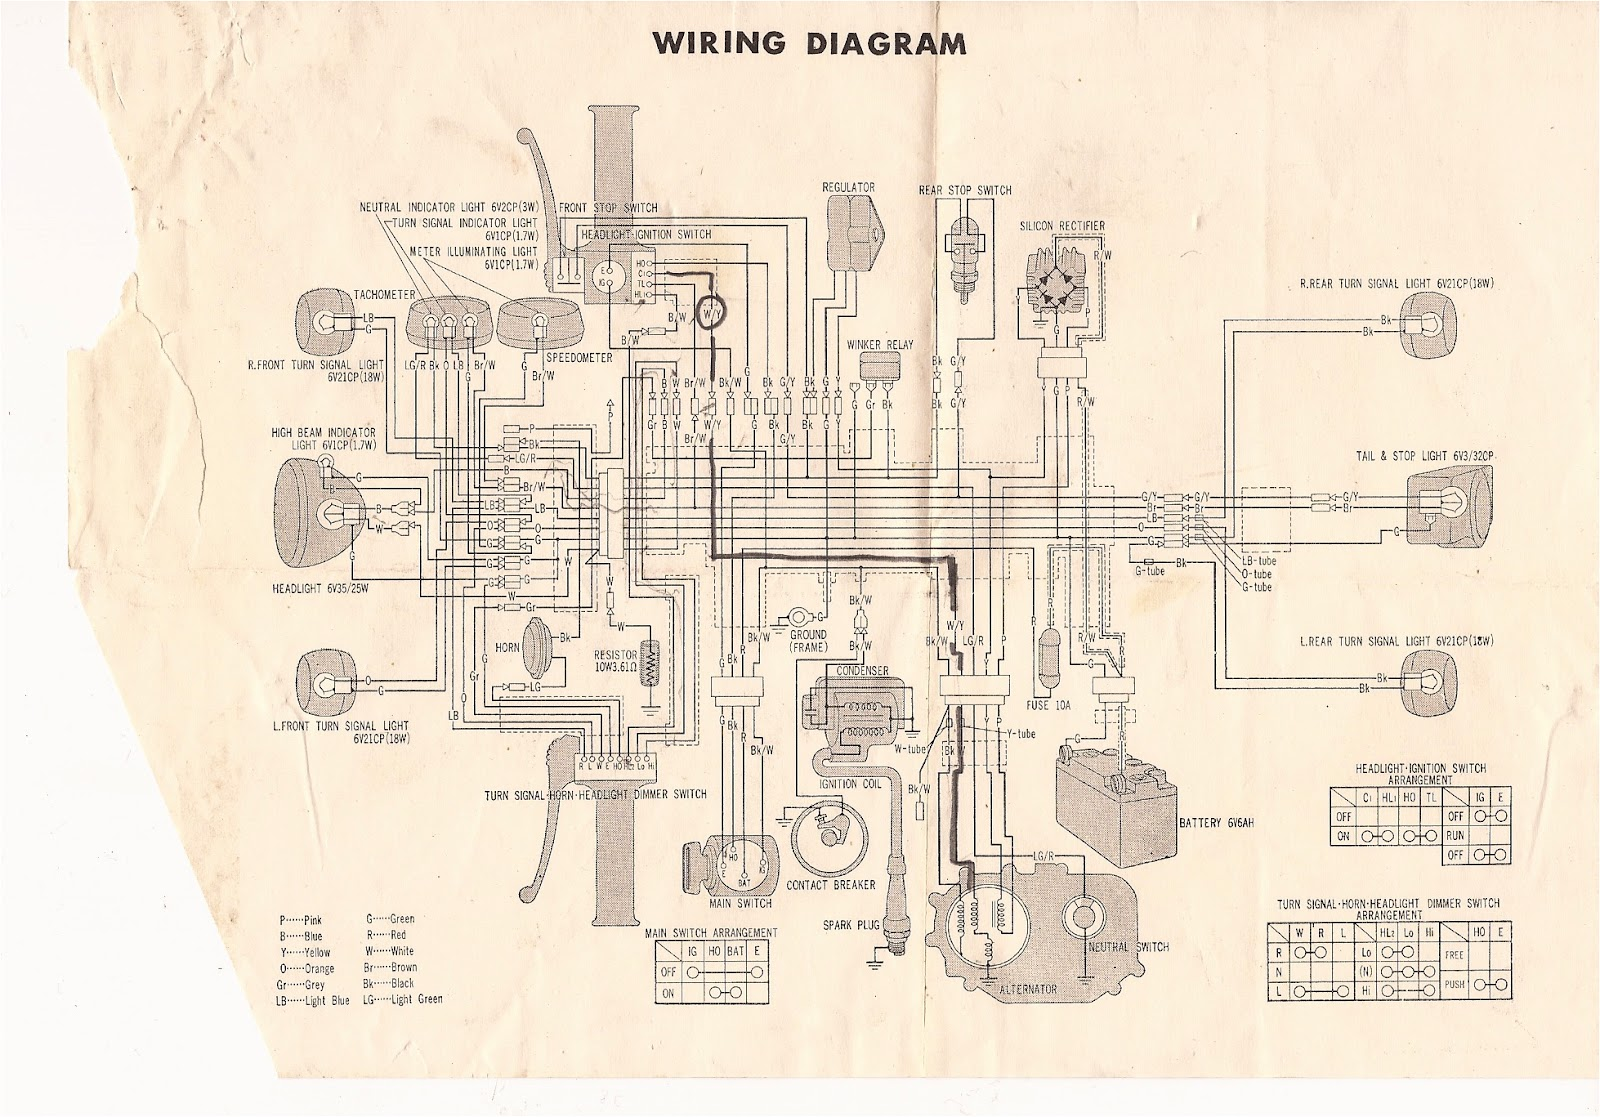 XL350+Wiring+diagram honda xr 125 wiring diagram custom honda xr and xl \u2022 free wiring 1974 honda cb360 wiring diagram at bakdesigns.co